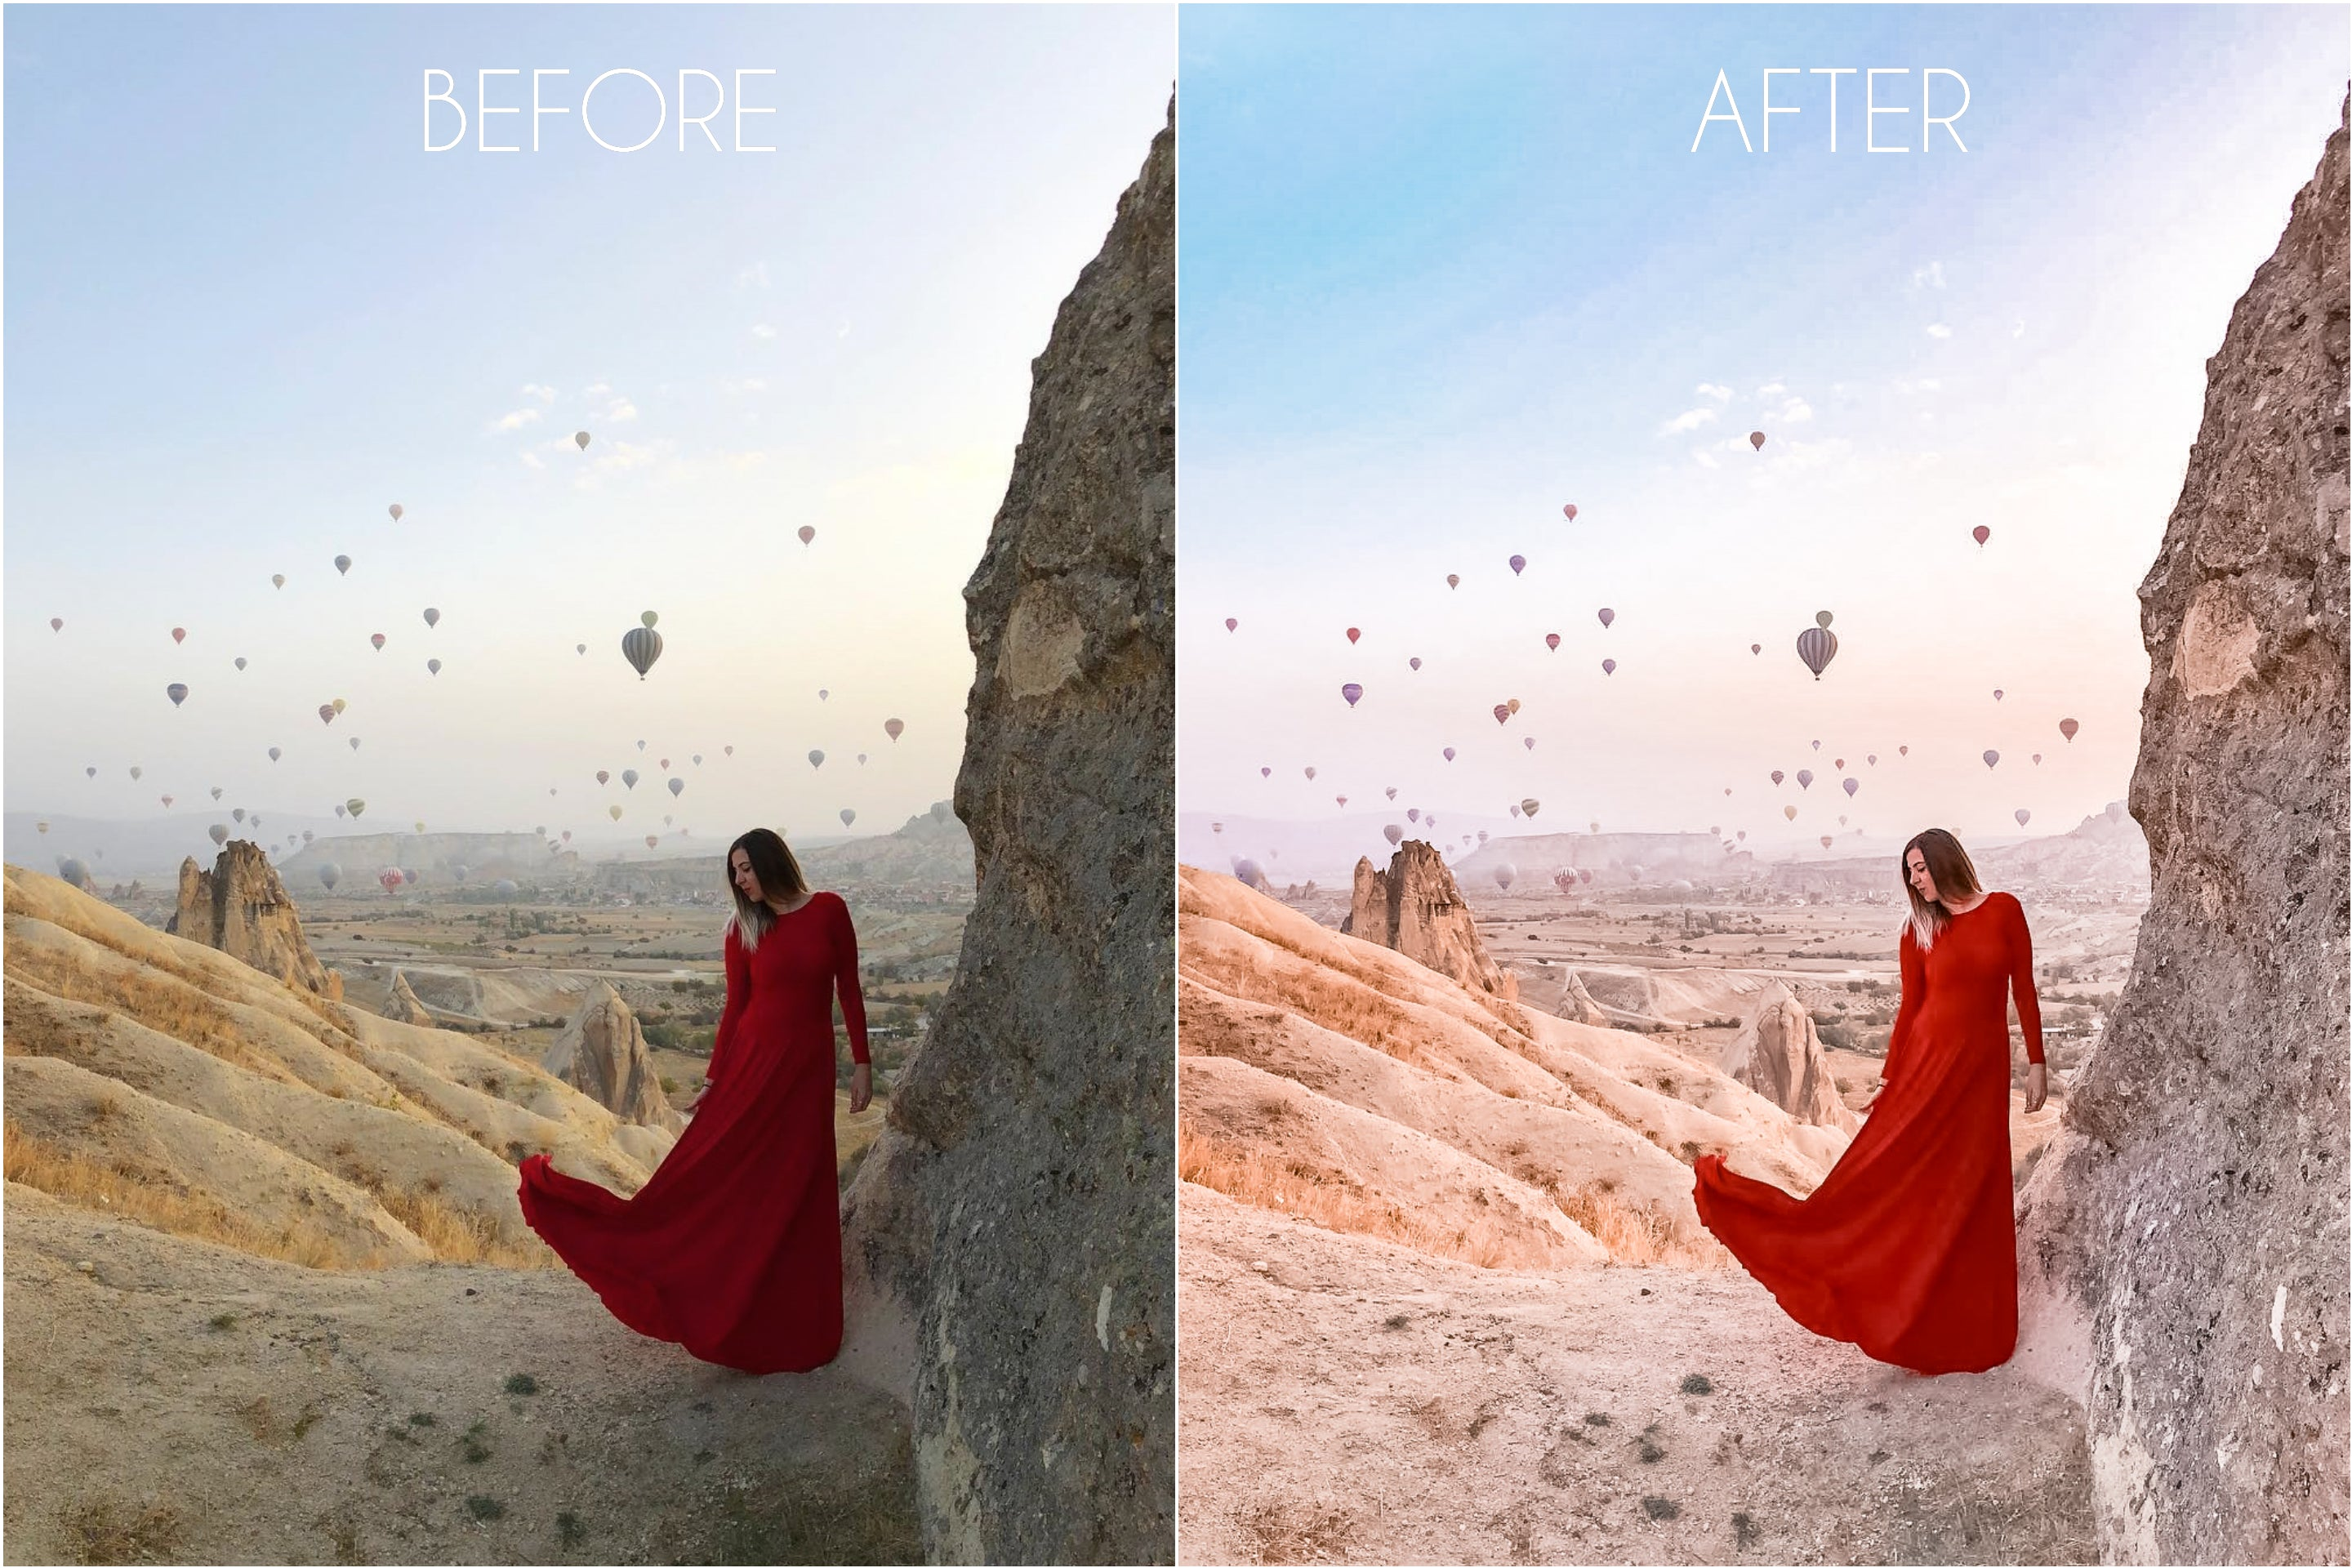 The Light & Dreamy Master Collection - The Dreamy Photographer. One Click Filter Presets